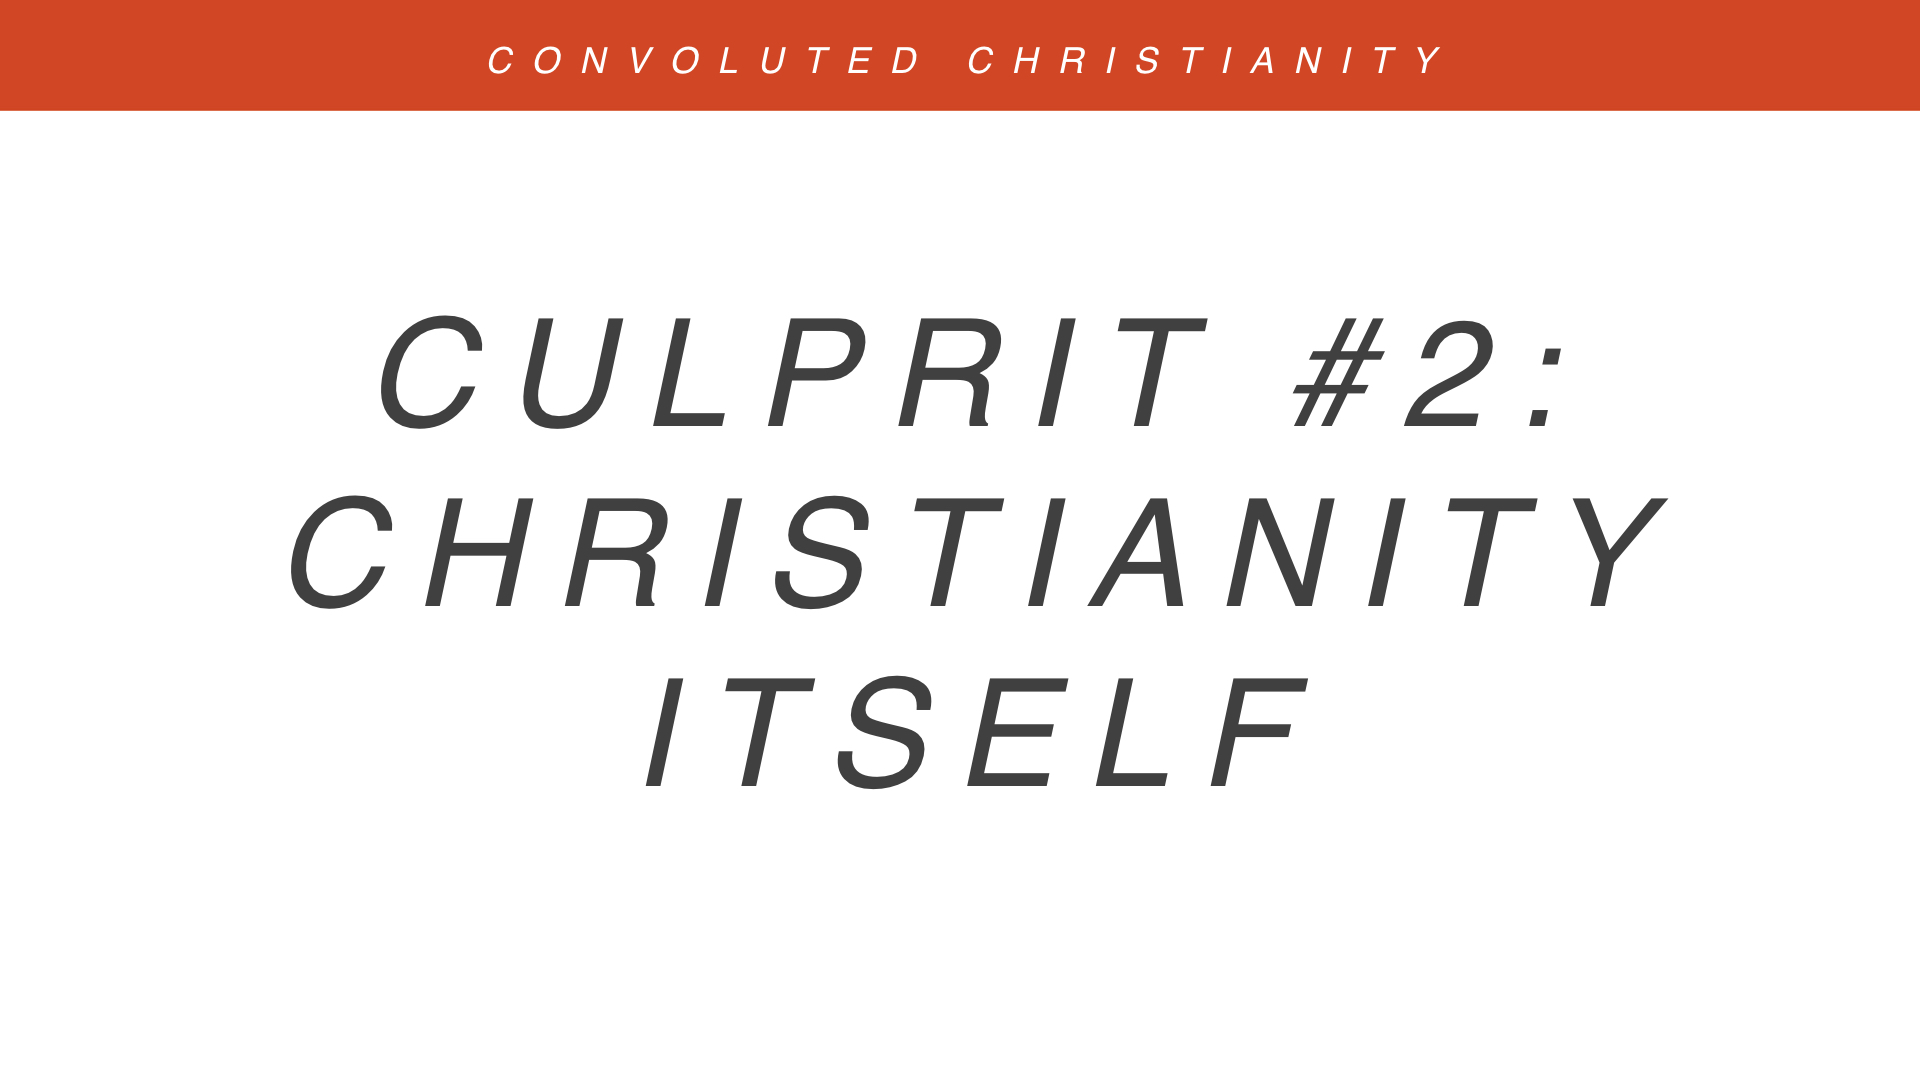 Real Christianity - Week 1 - Convoluted Christianity copy.009.jpeg